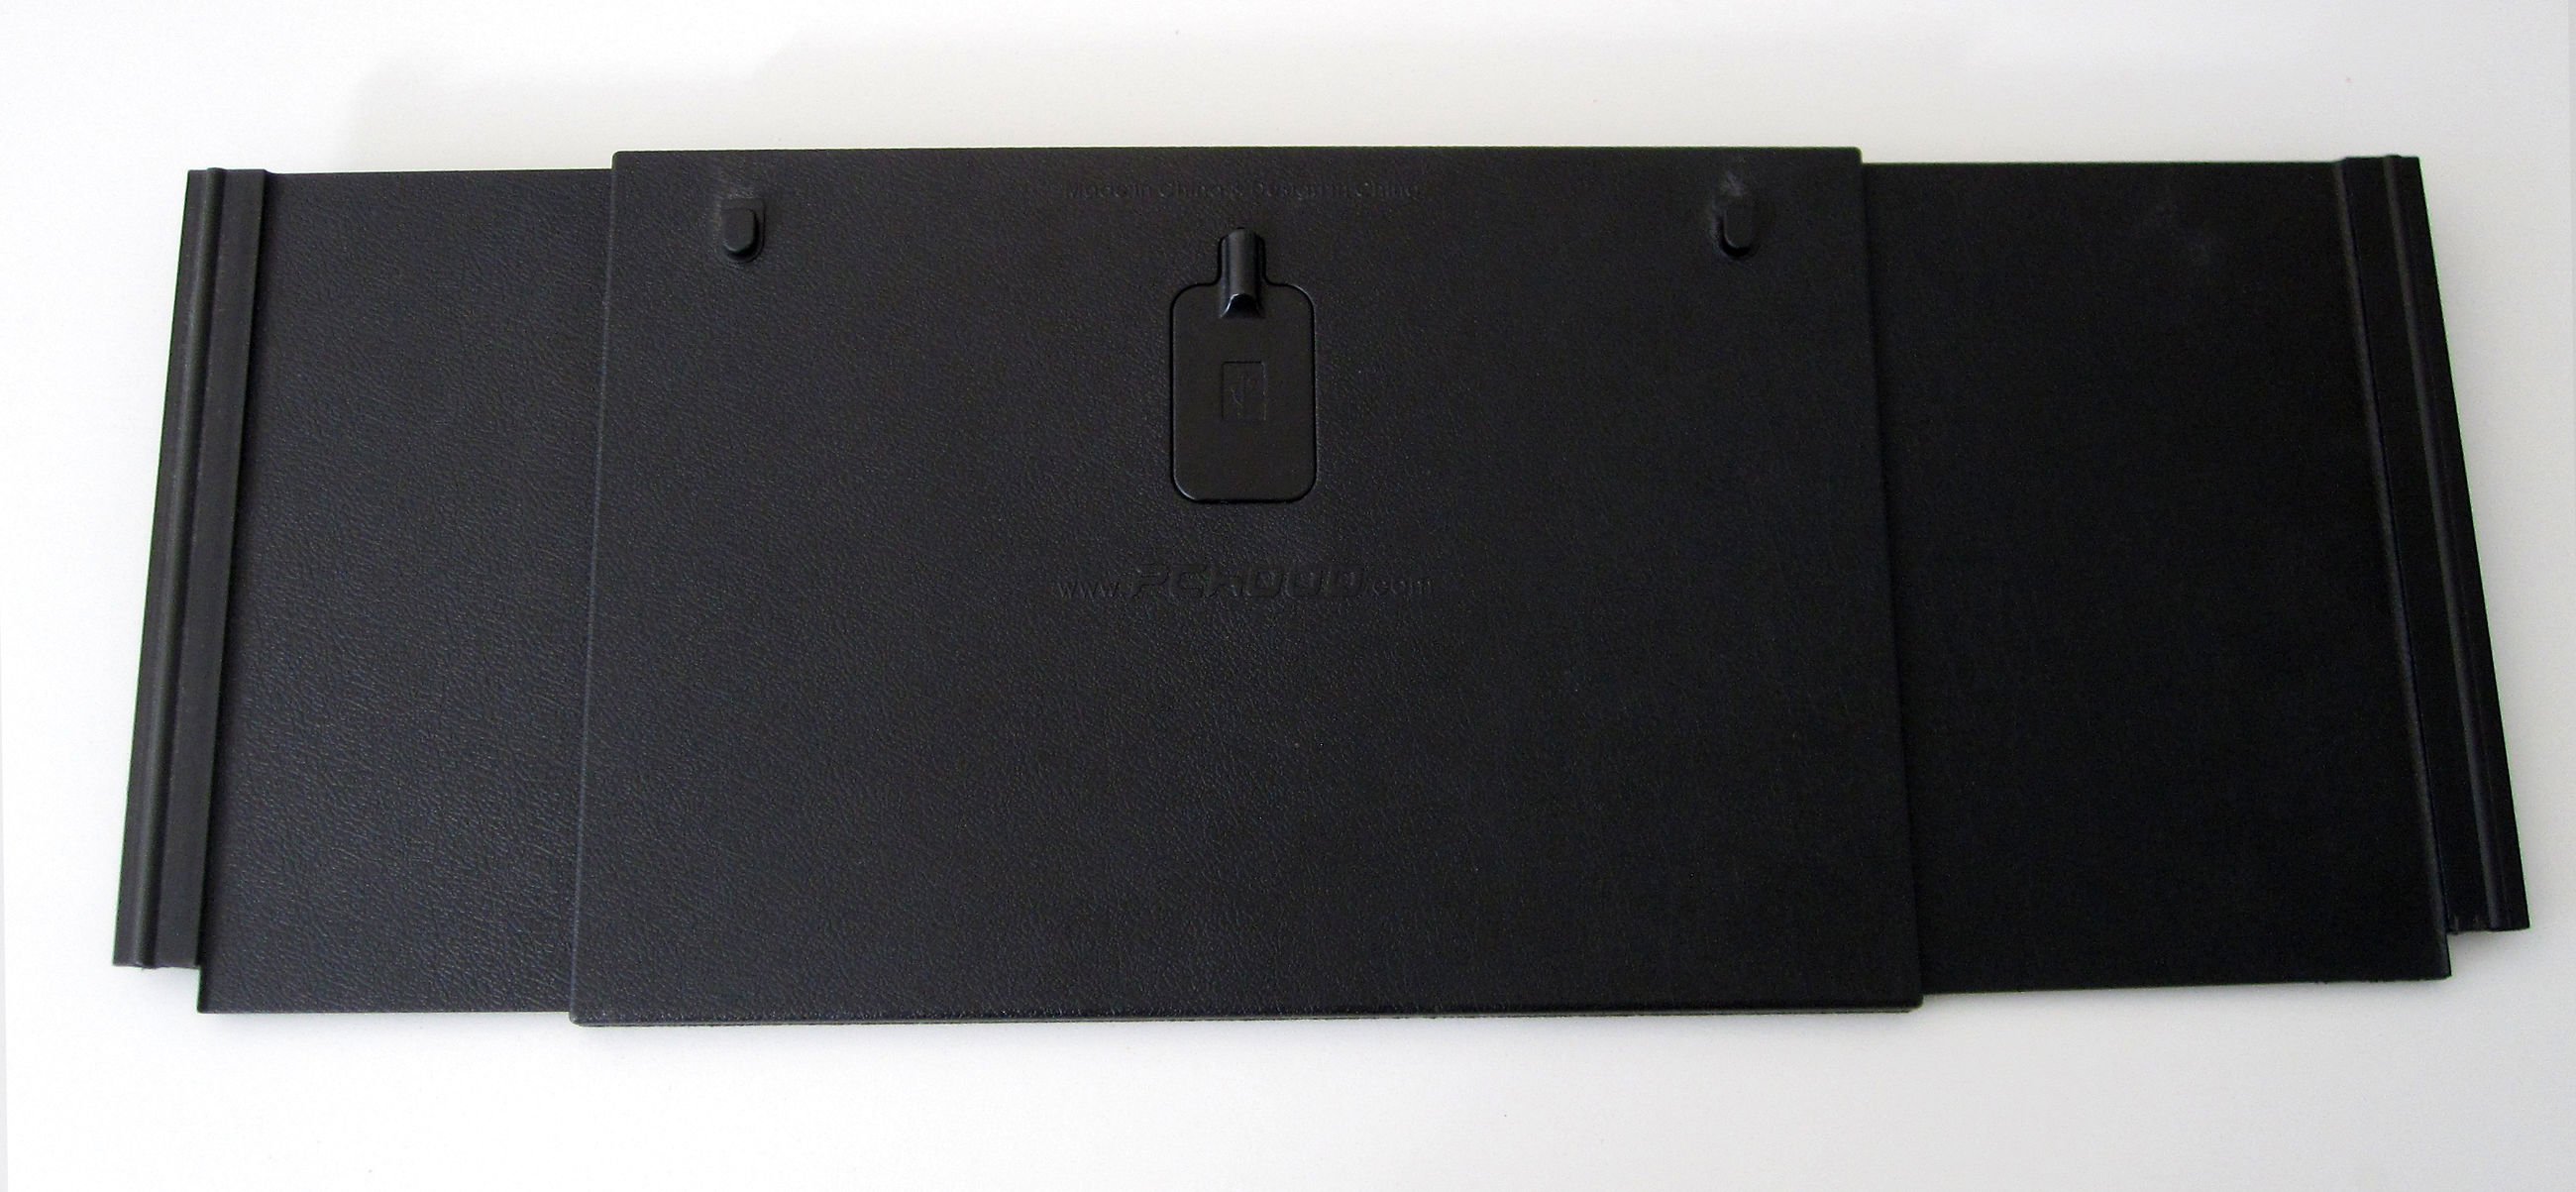 PCHood Monitor Hood for 15 to 25 Inch Monitors Image